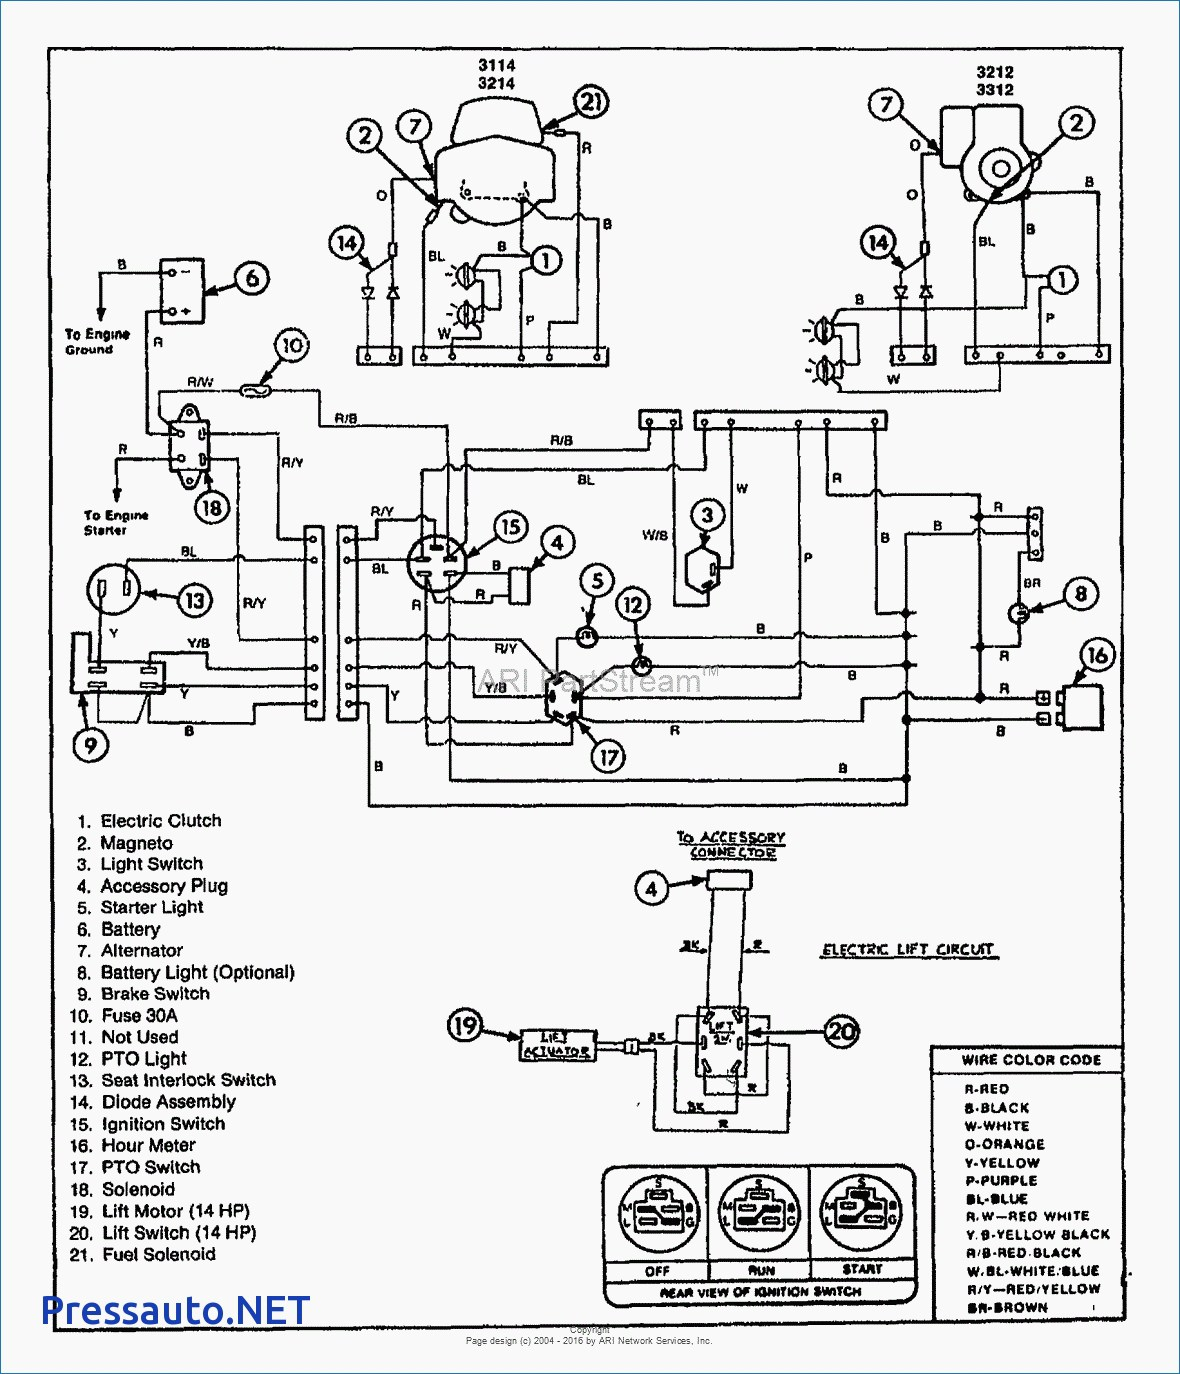 Electrical Circuit Diagram Tool